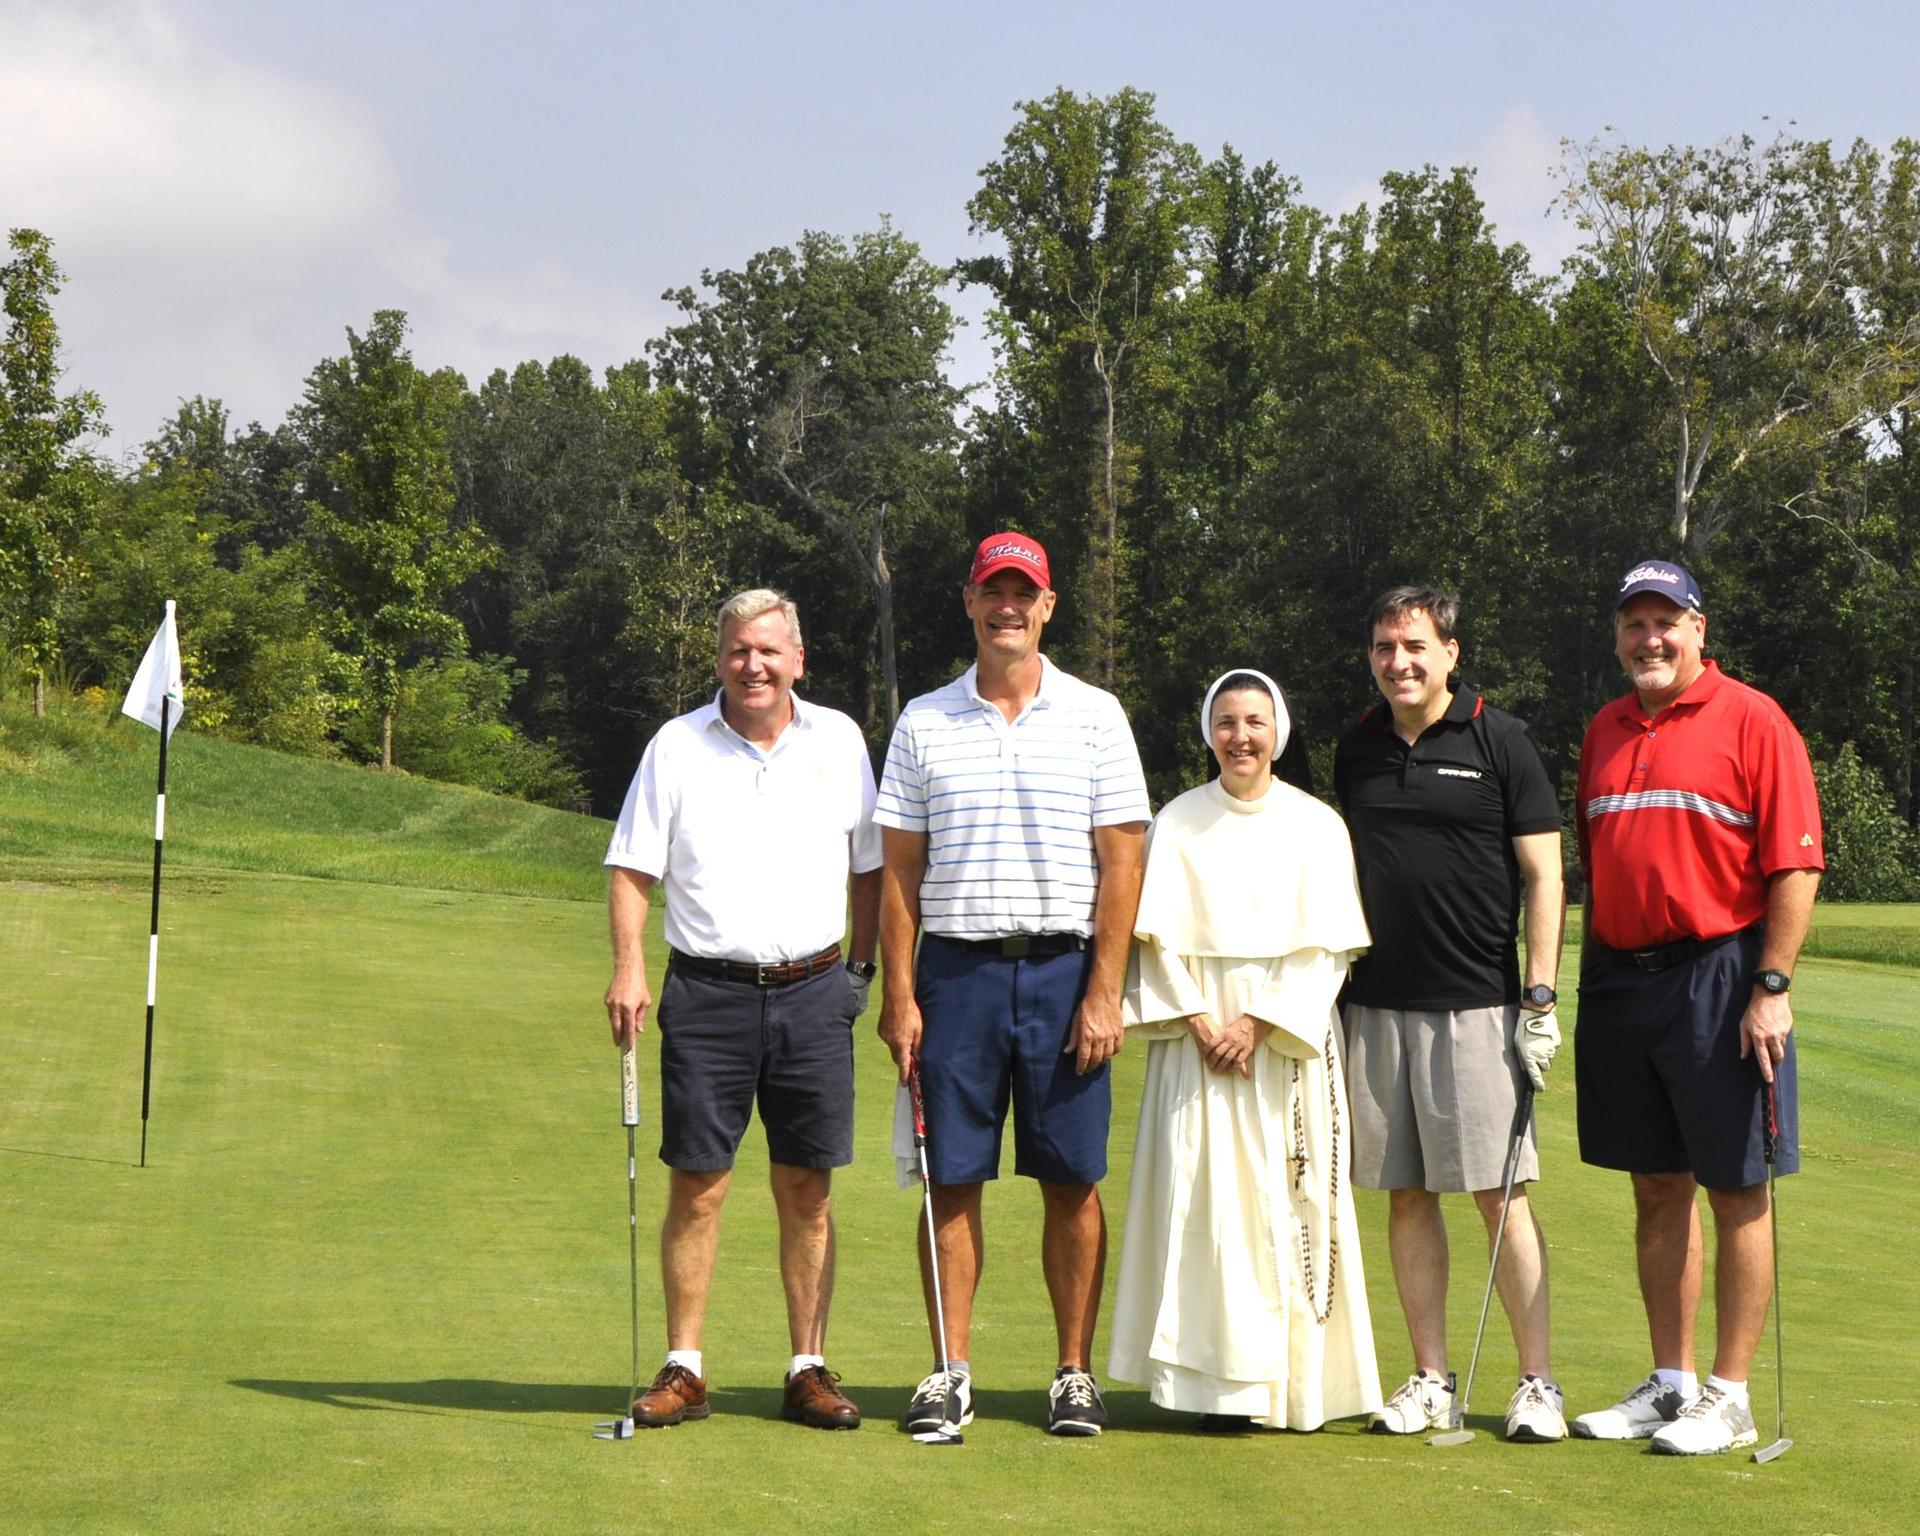 A group of golfers pose